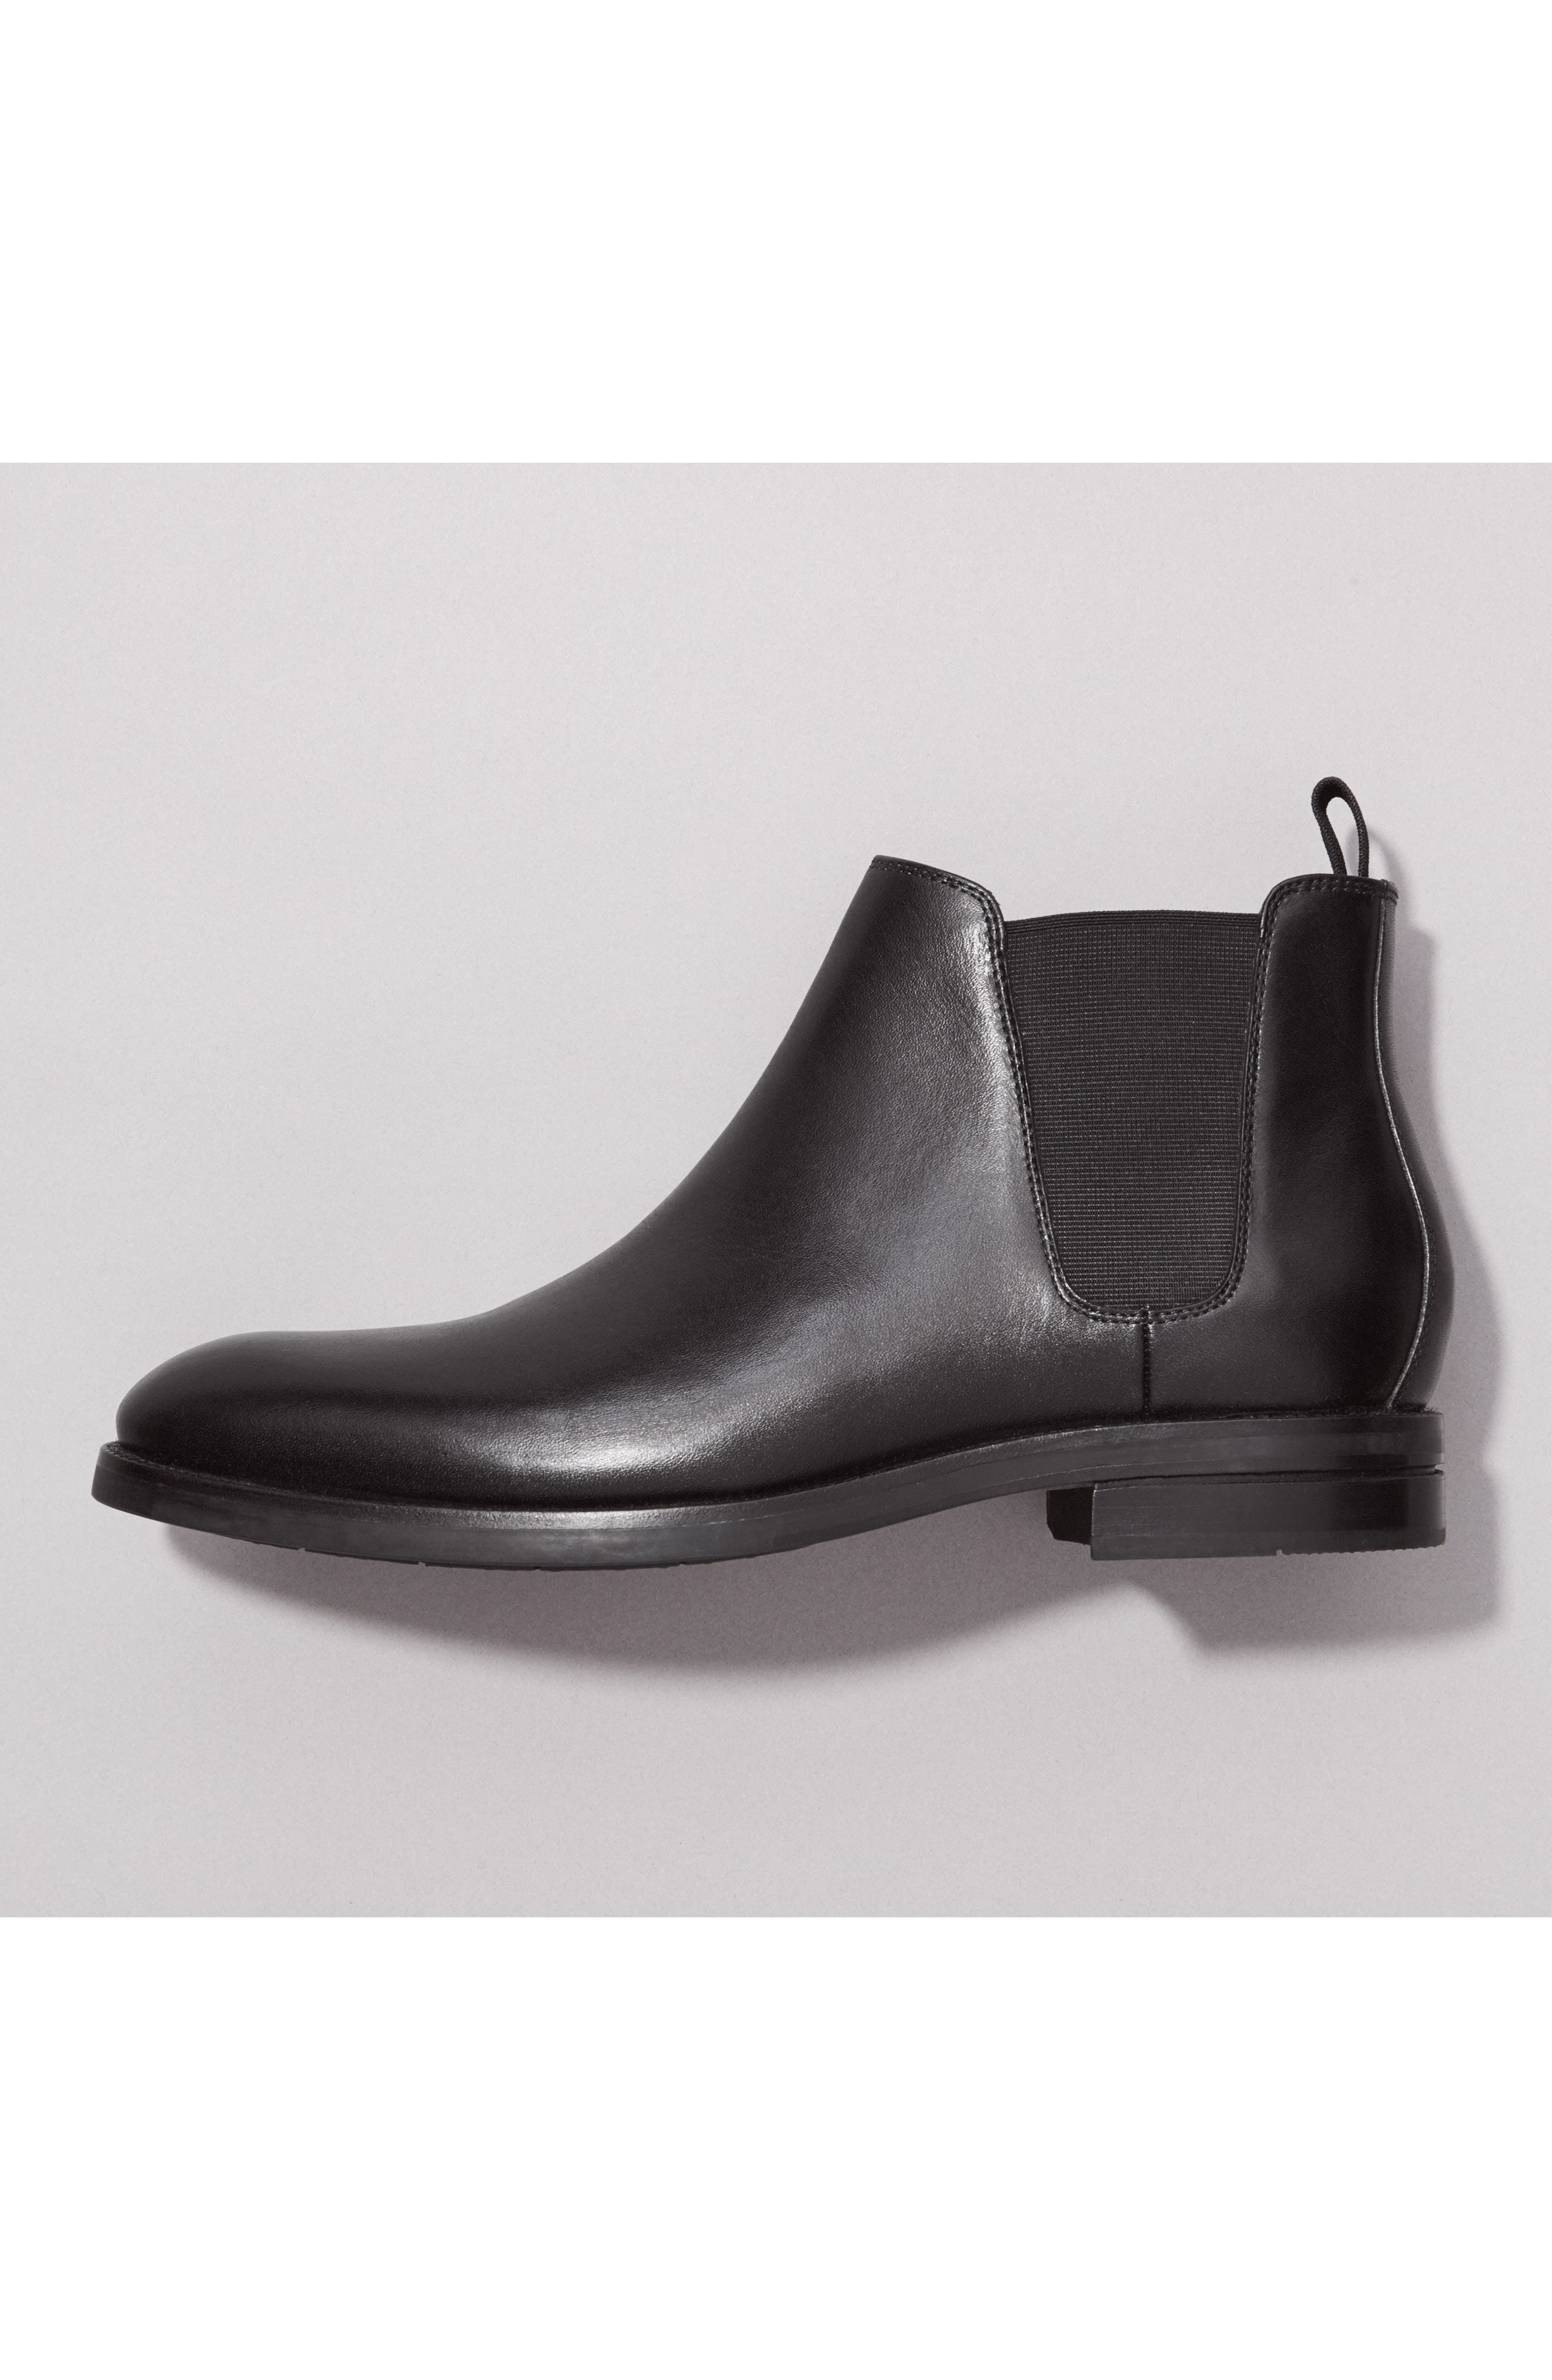 Wakefield Grand Chelsea Boot,                             Alternate thumbnail 7, color,                             BLACK LEATHER